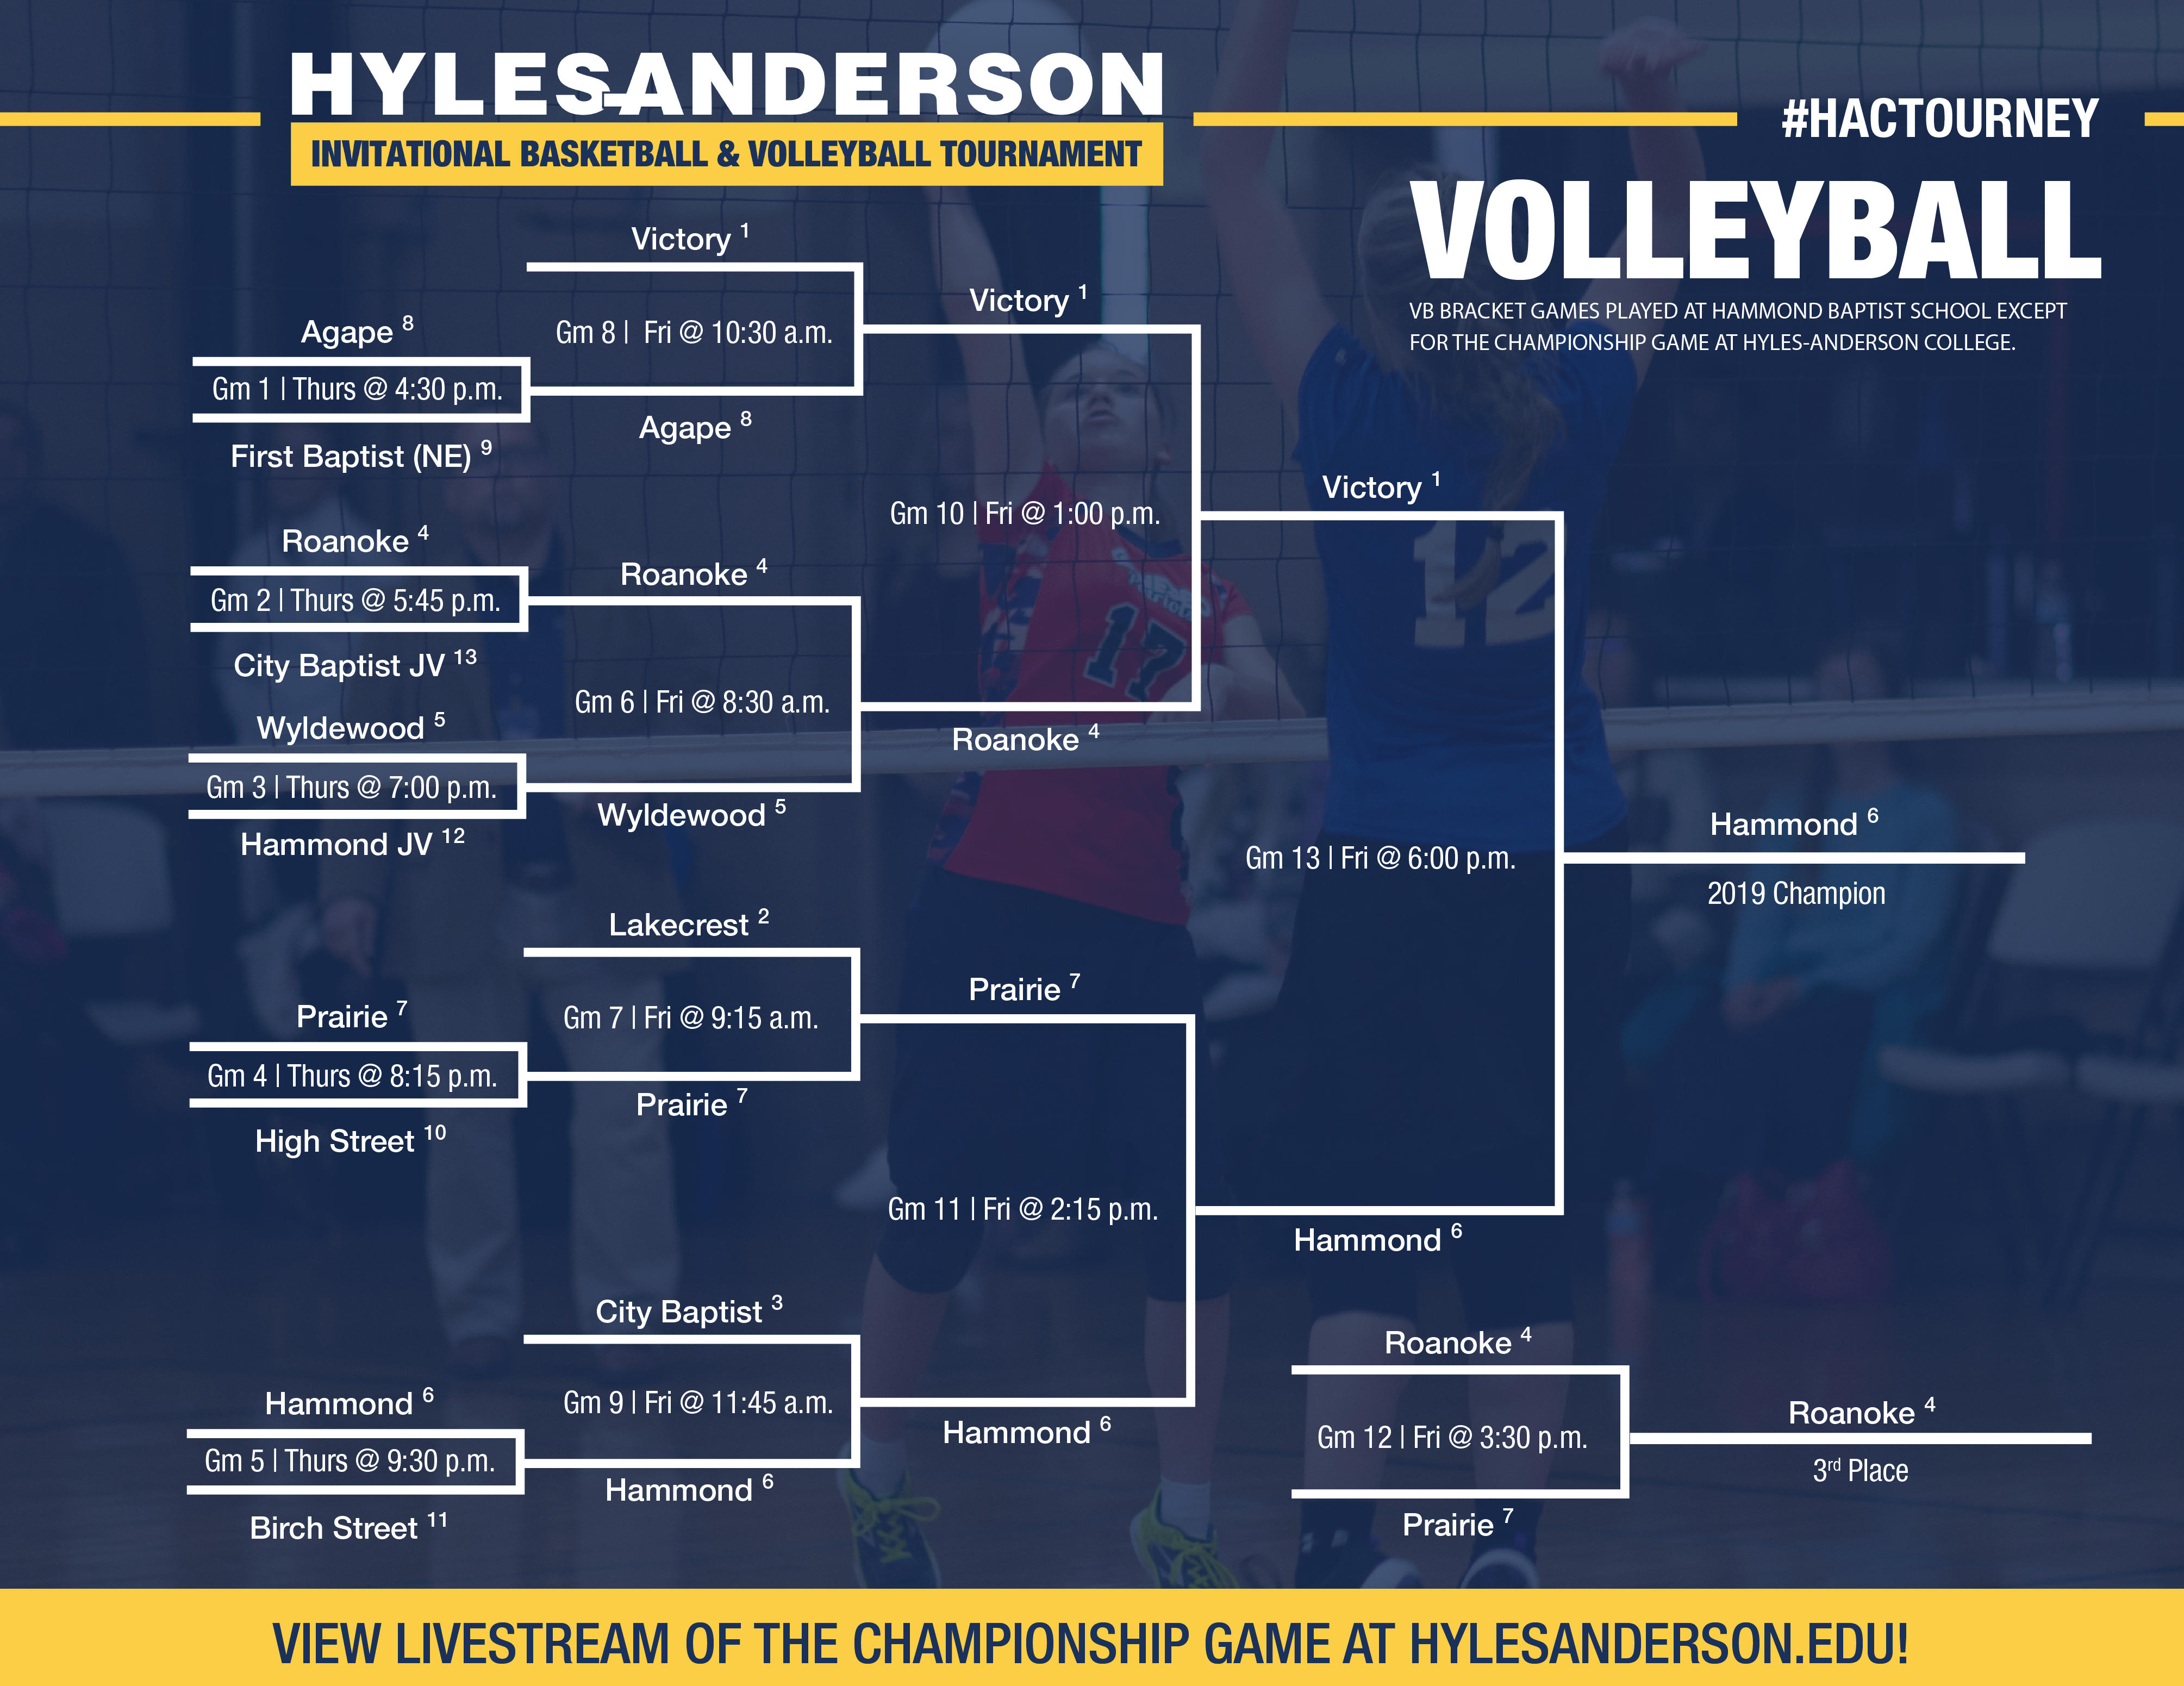 Volleyball bracket